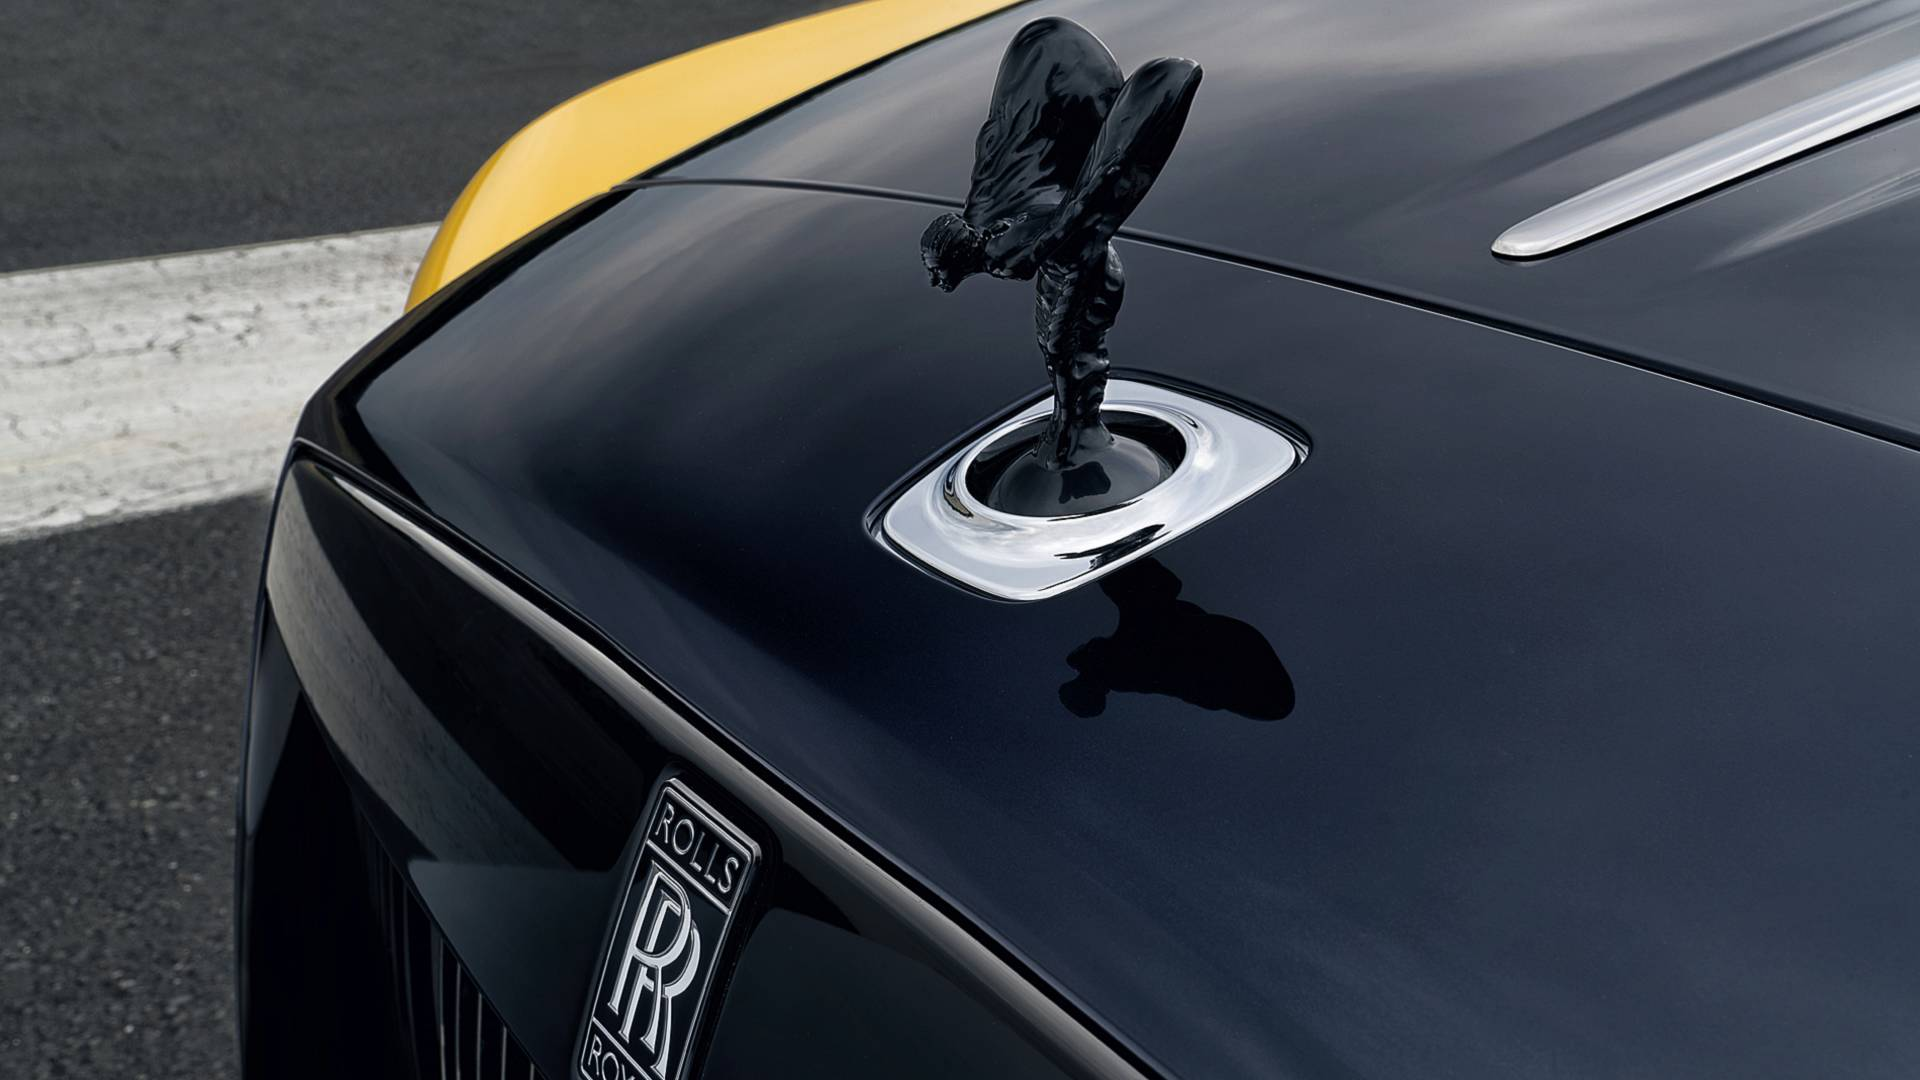 rolls-royce-dawn-black-badge-5.jpg